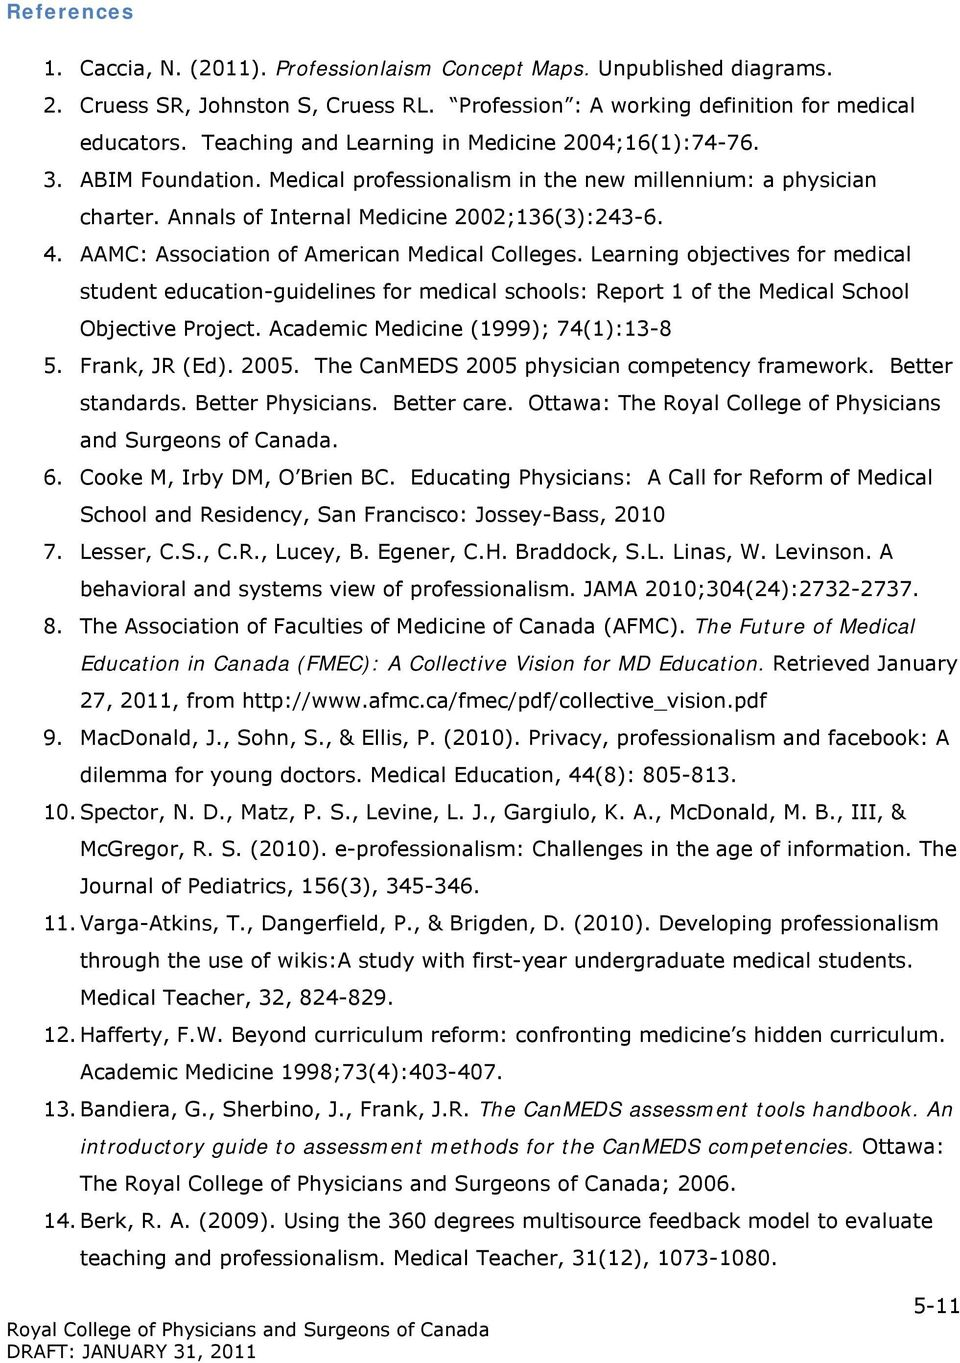 AAMC: Association of American Medical Colleges. Learning objectives for medical student education-guidelines for medical schools: Report 1 of the Medical School Objective Project.